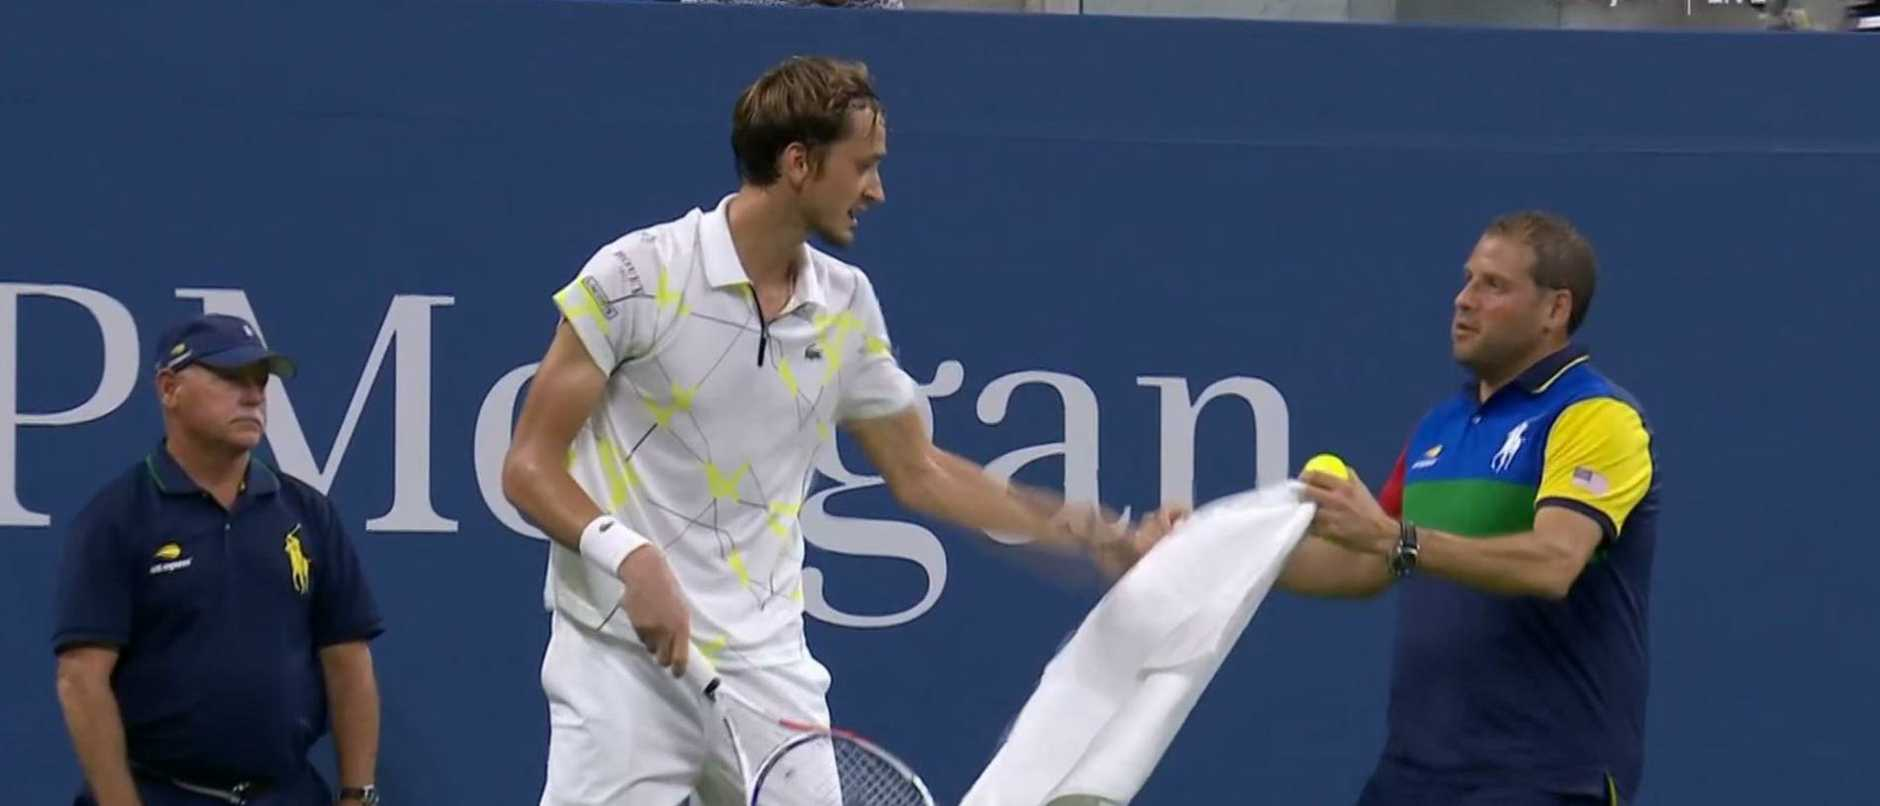 Medvedev rips a towel away from a ball boy earlier in the tournament.